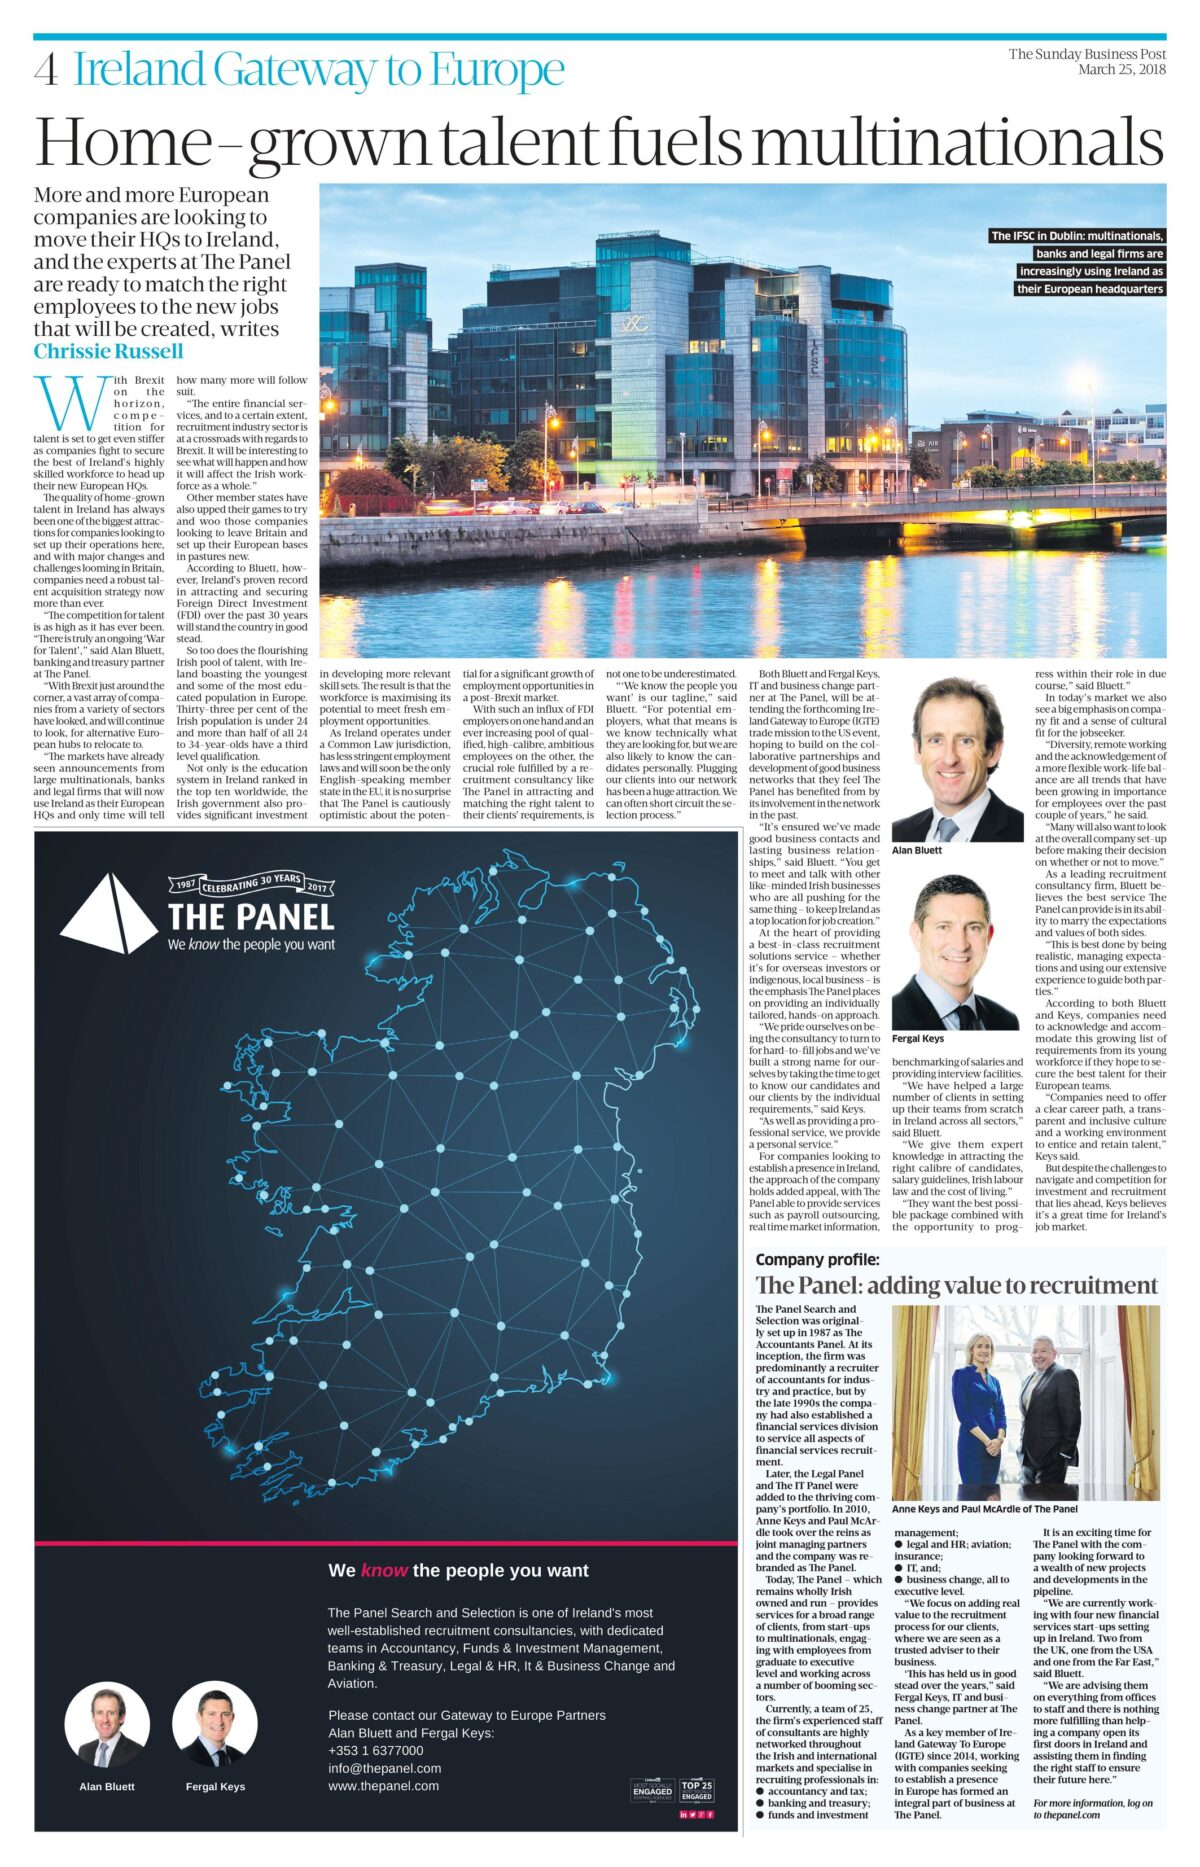 IGTE Sunday Business Post small